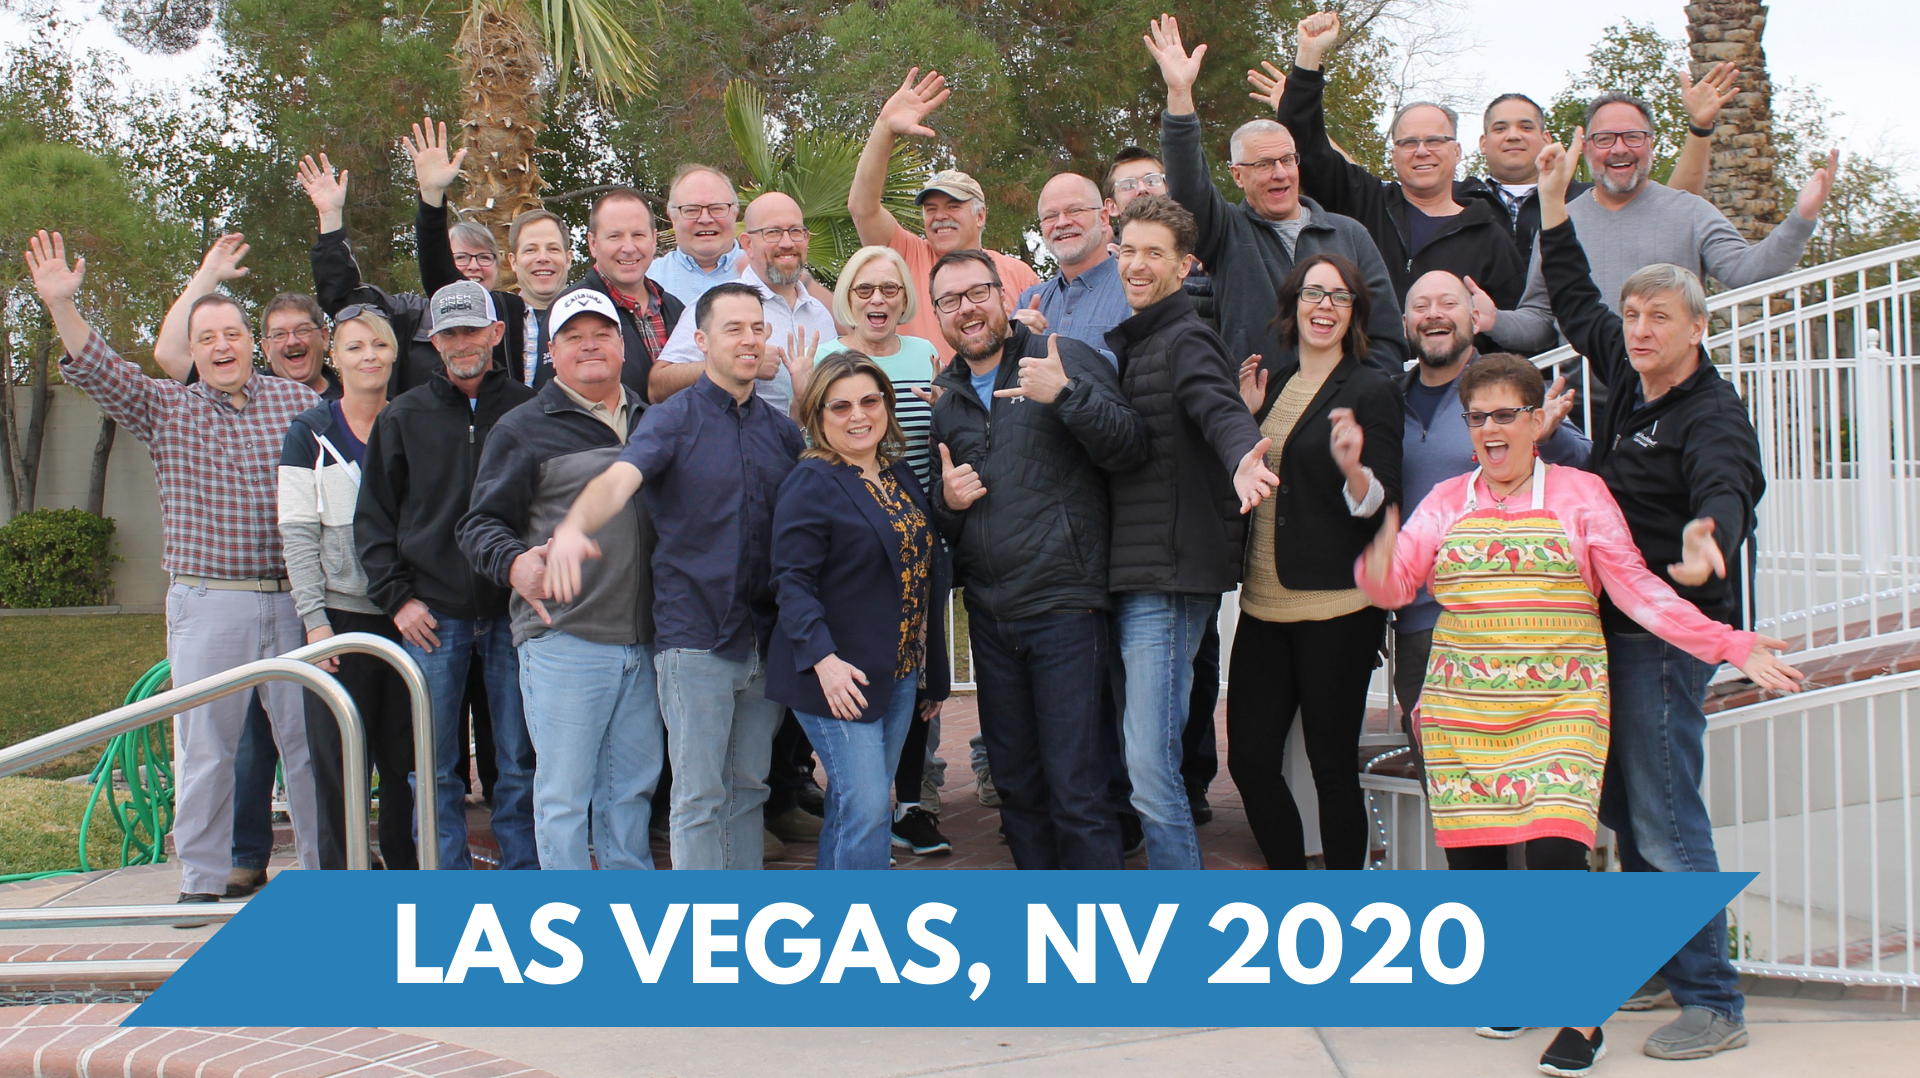 Chief Architect Training by Chief Experts Academy 2020 Las Vegas IBS Event